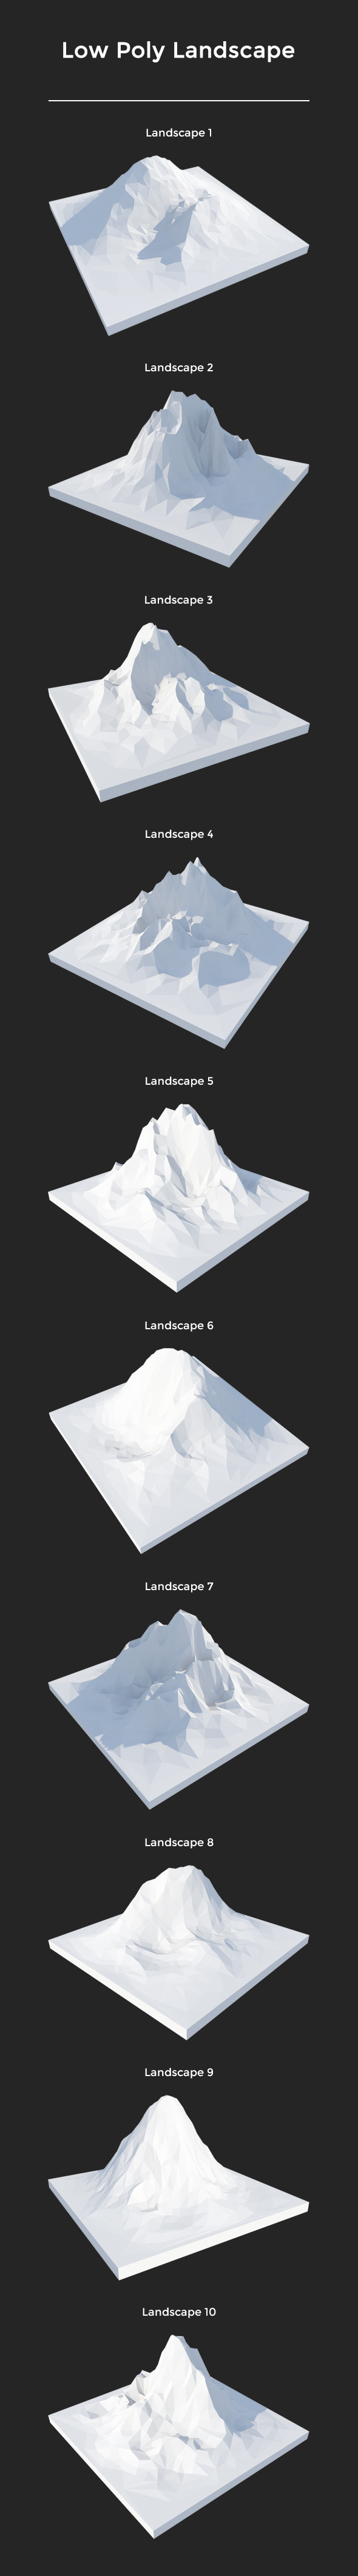 Pack Low Poly Landscape - 3DOcean Item for Sale